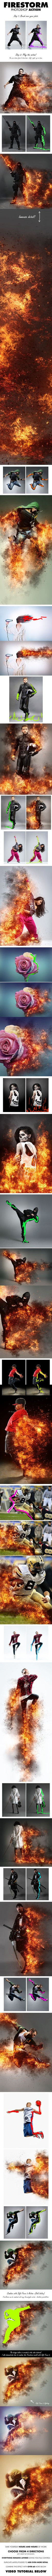 FireStorm Photoshop Action. Photoshop tips. Nordic360.